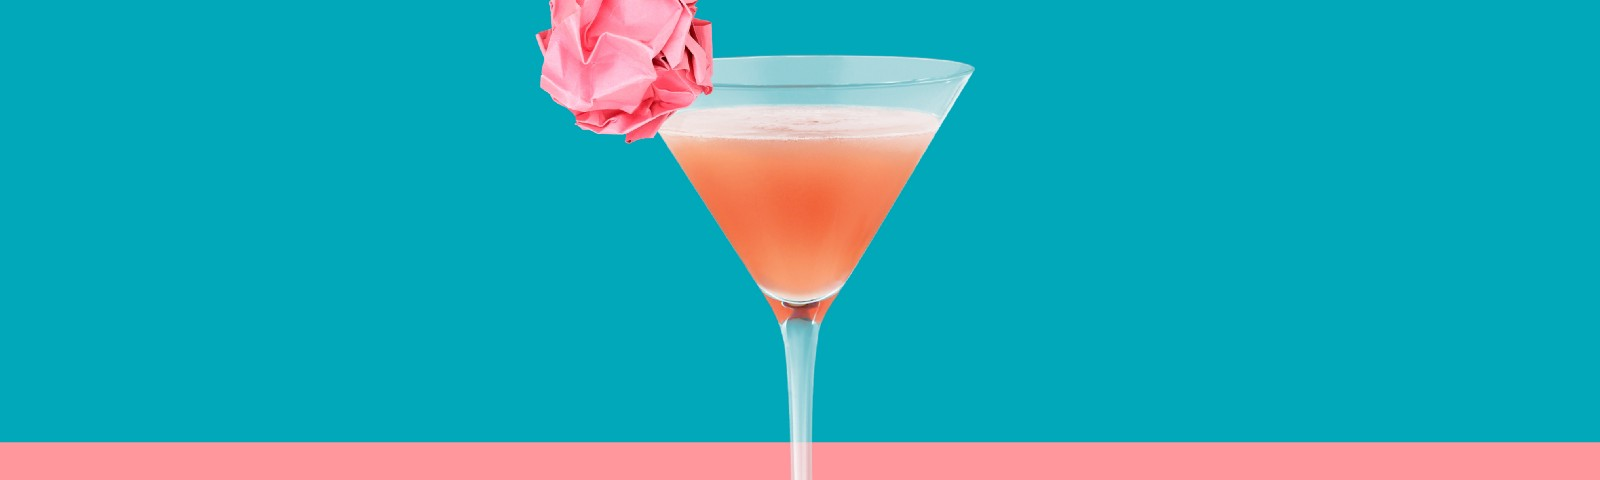 Cocktail with a post it as garnish